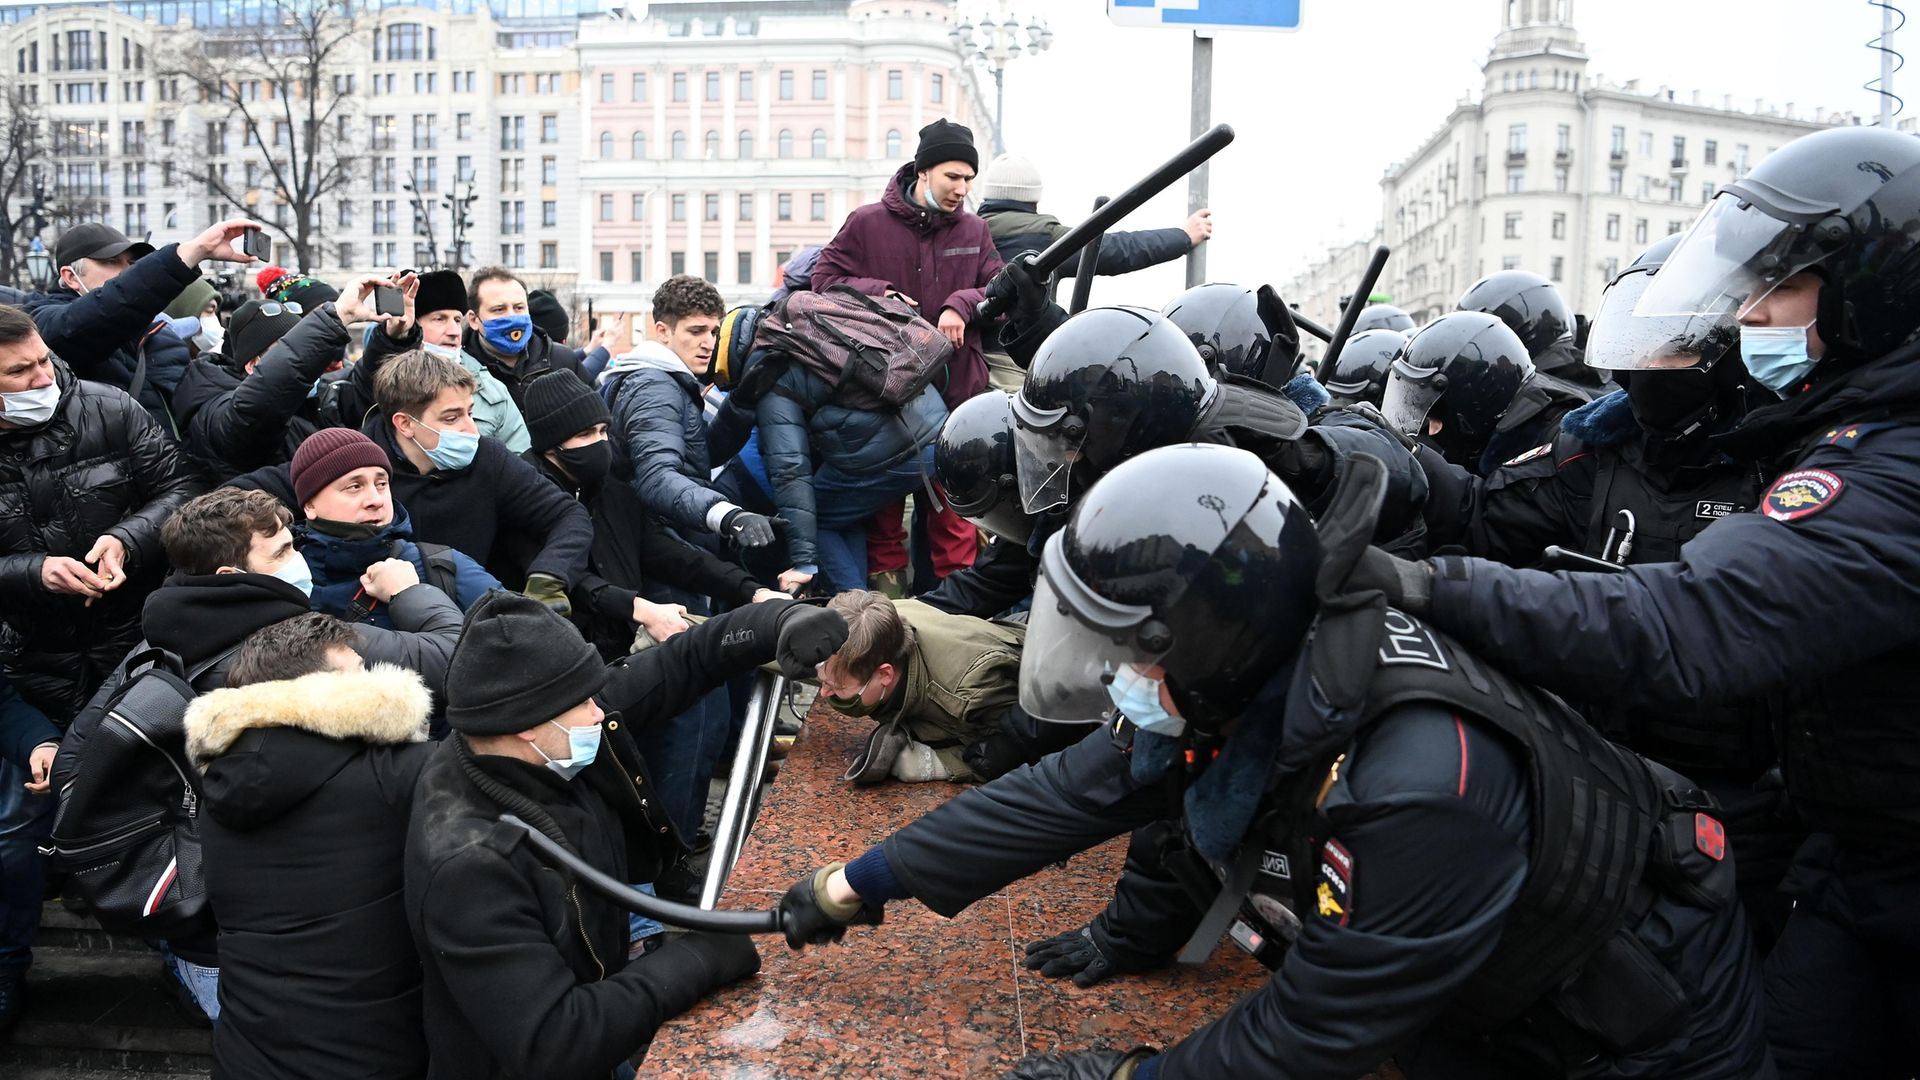 Protesters clash with riot police during a rally in support of jailed opposition leader Alexei Navalny in downtown Moscow - Credit: AFP via Getty Images